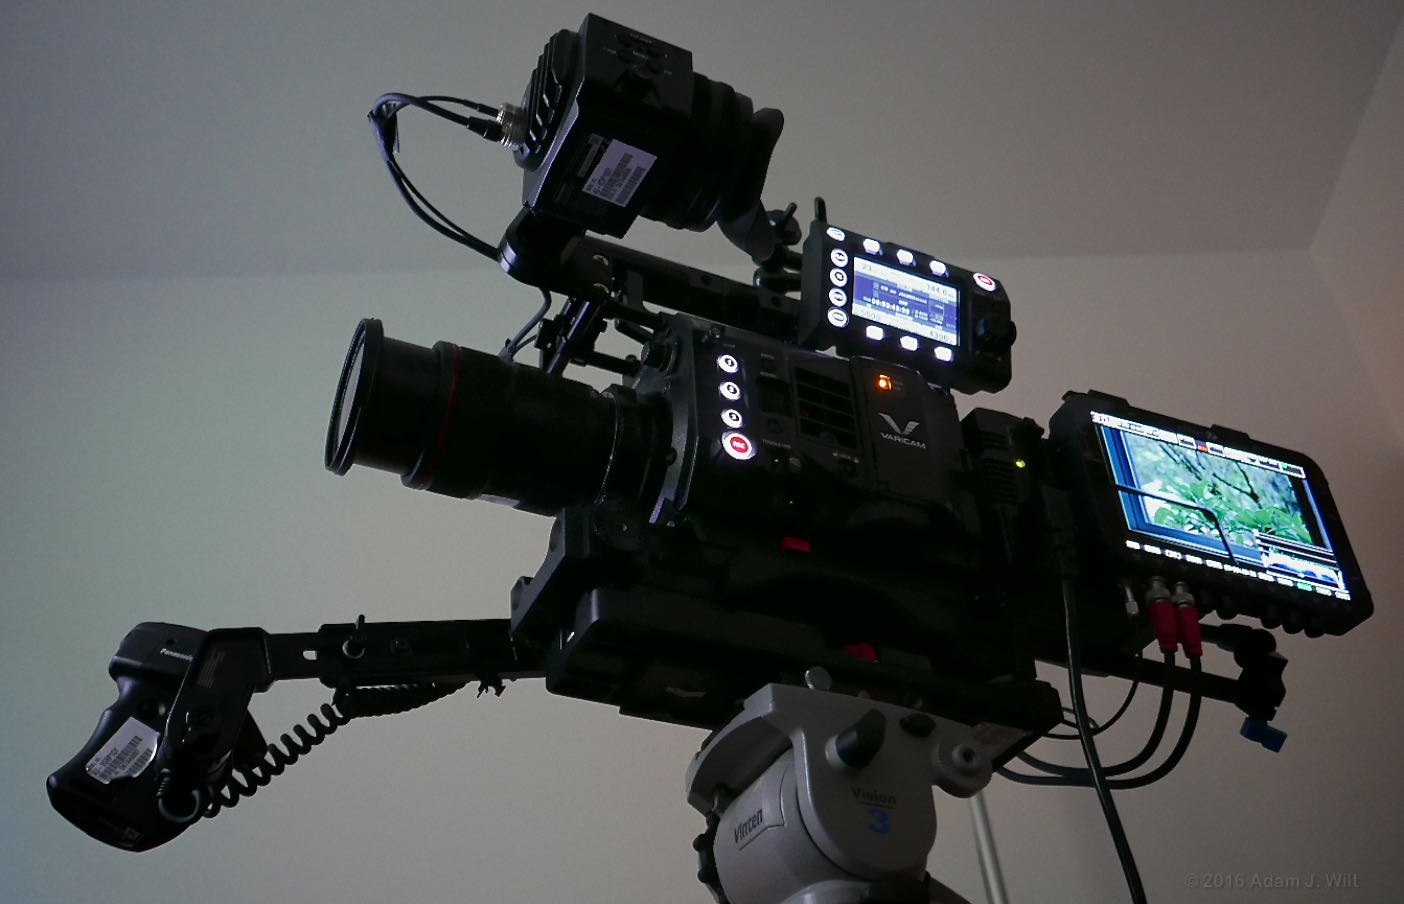 VariCam LT in the dark, with Odyssey7Q+